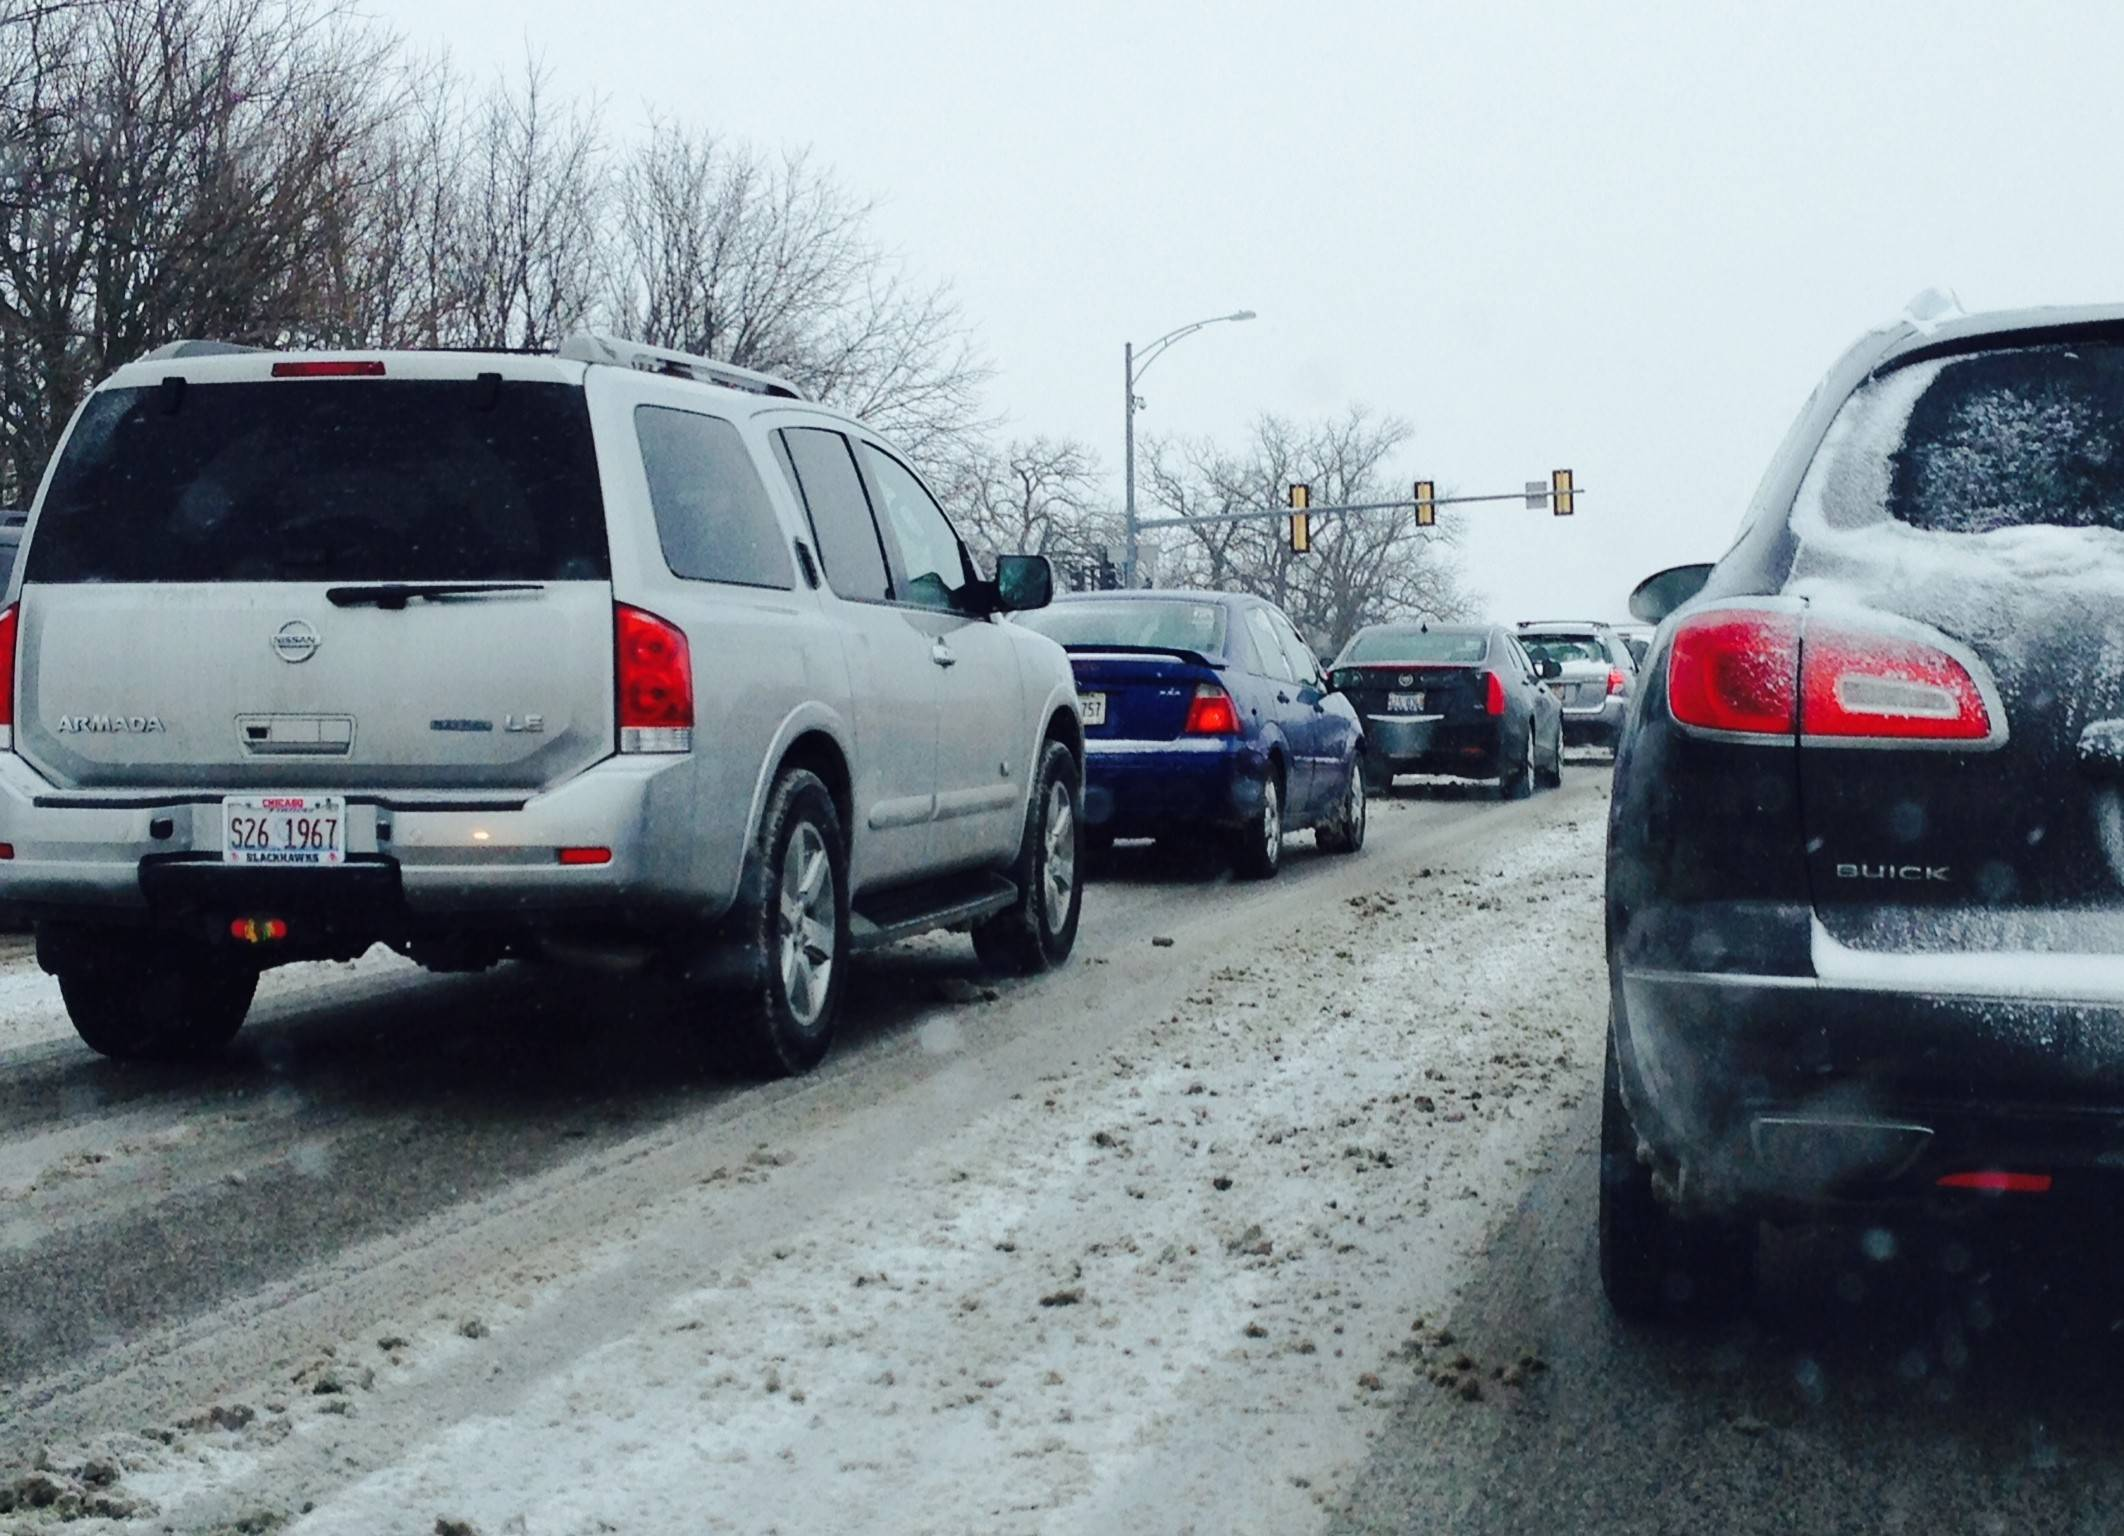 Overnight and morning snow slows traffic on Randall Road this morning.